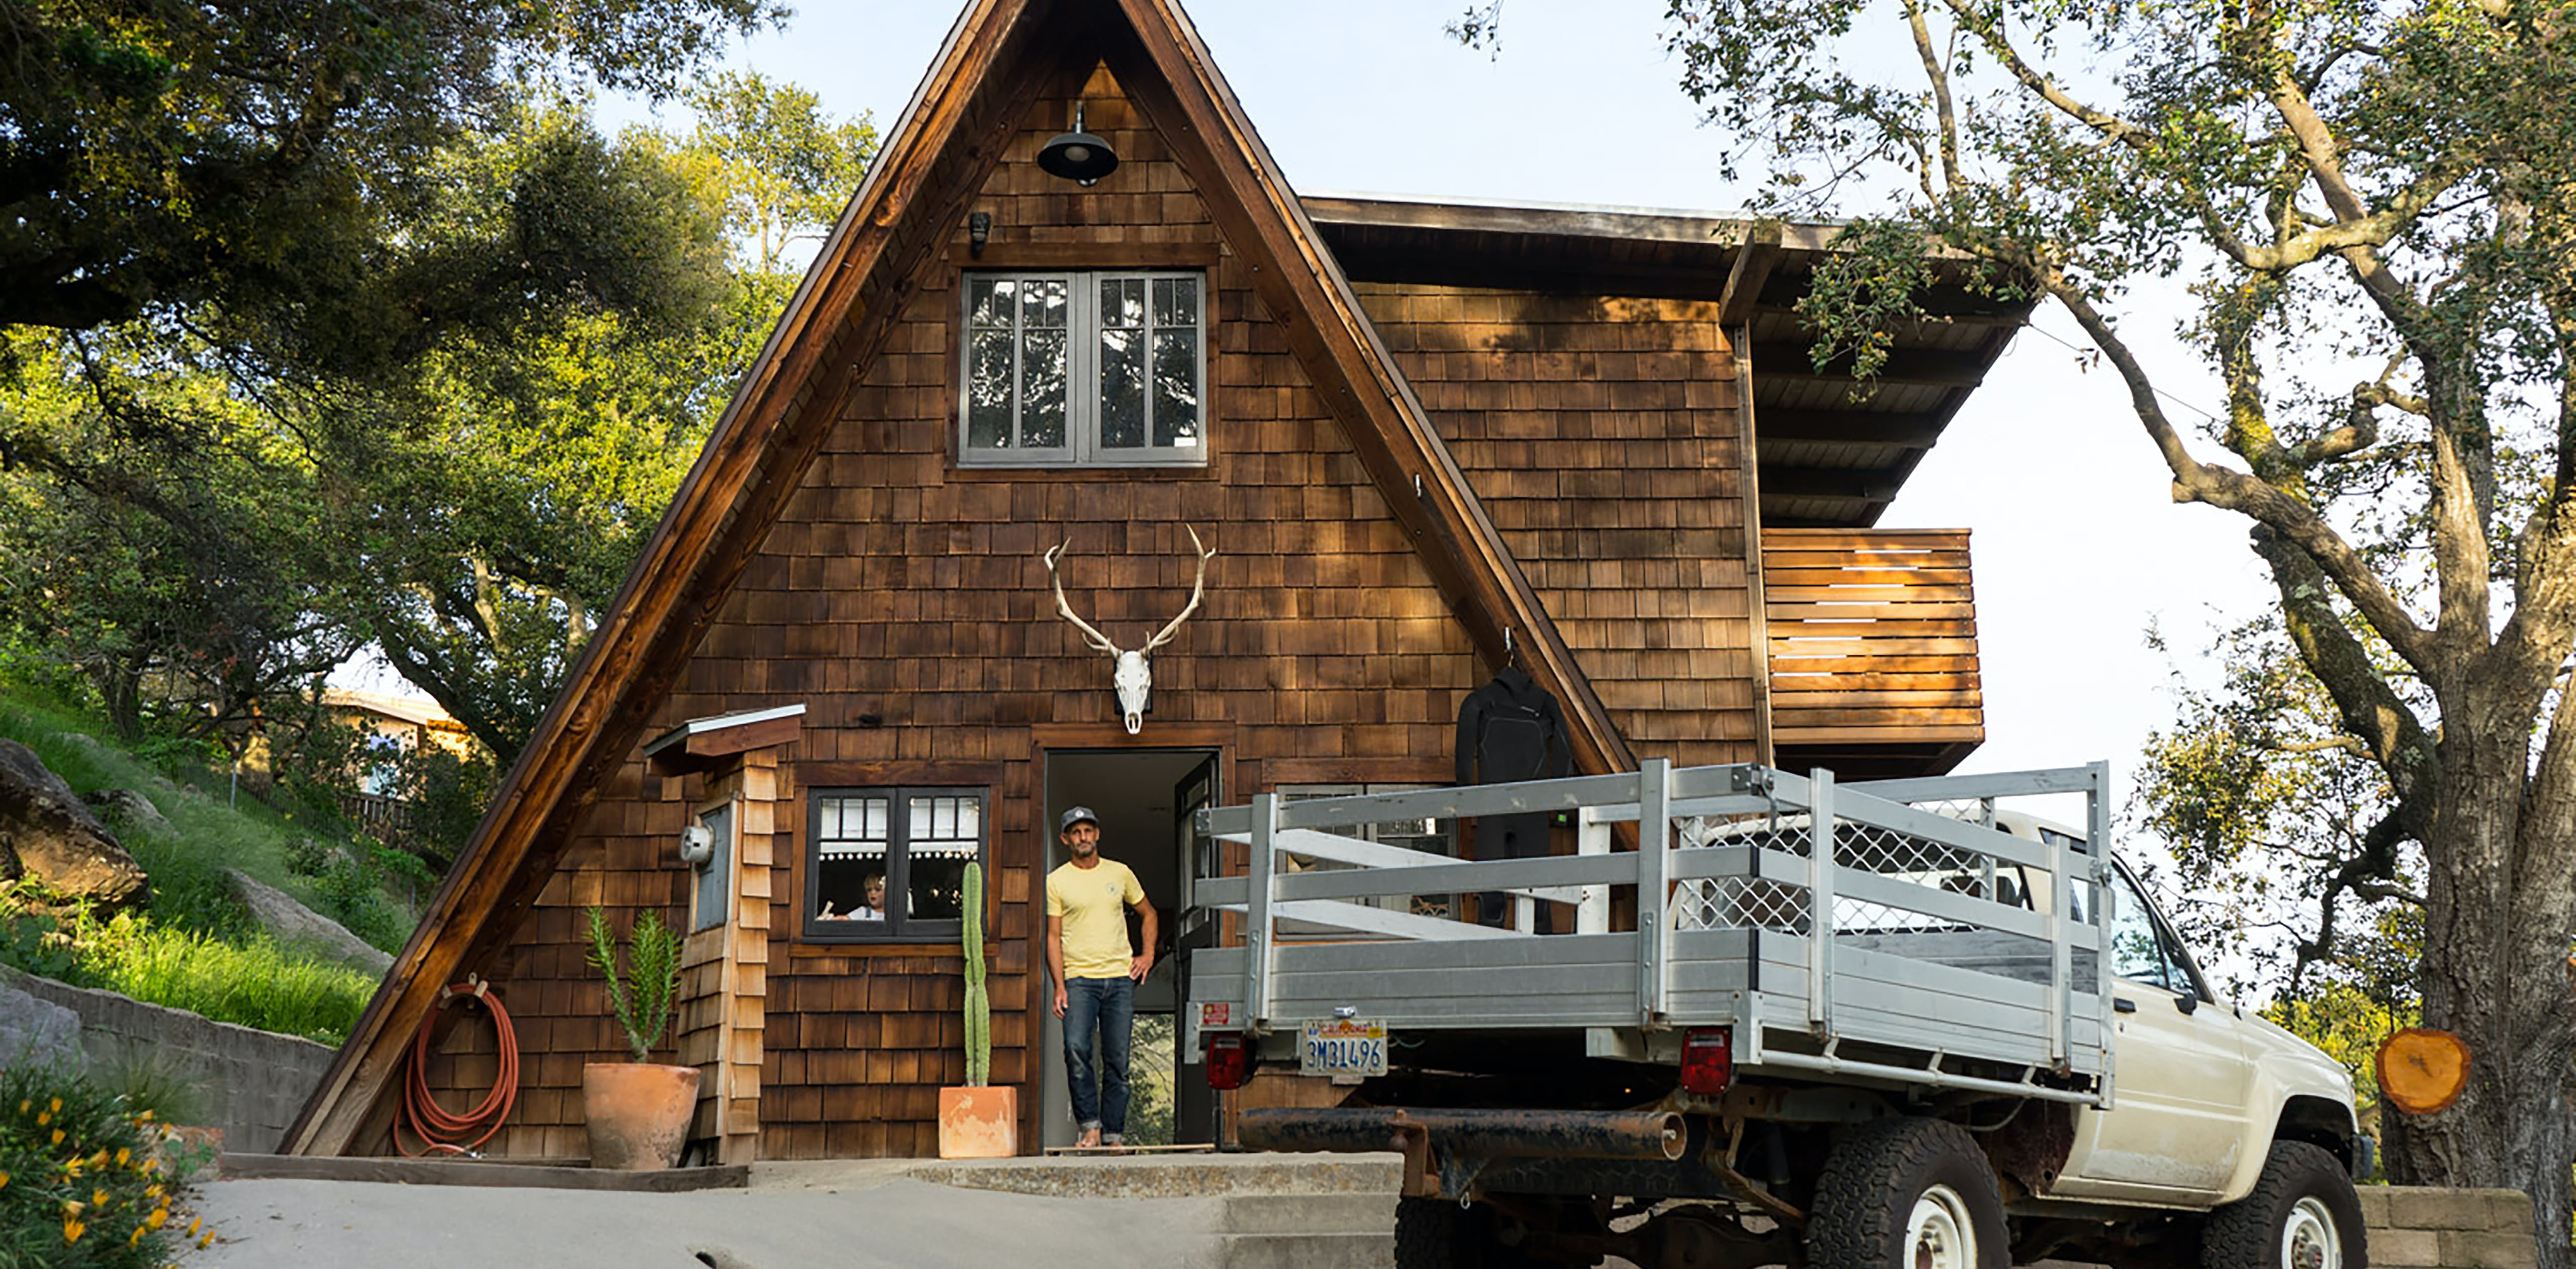 What Makes A Proper Surf Shack?